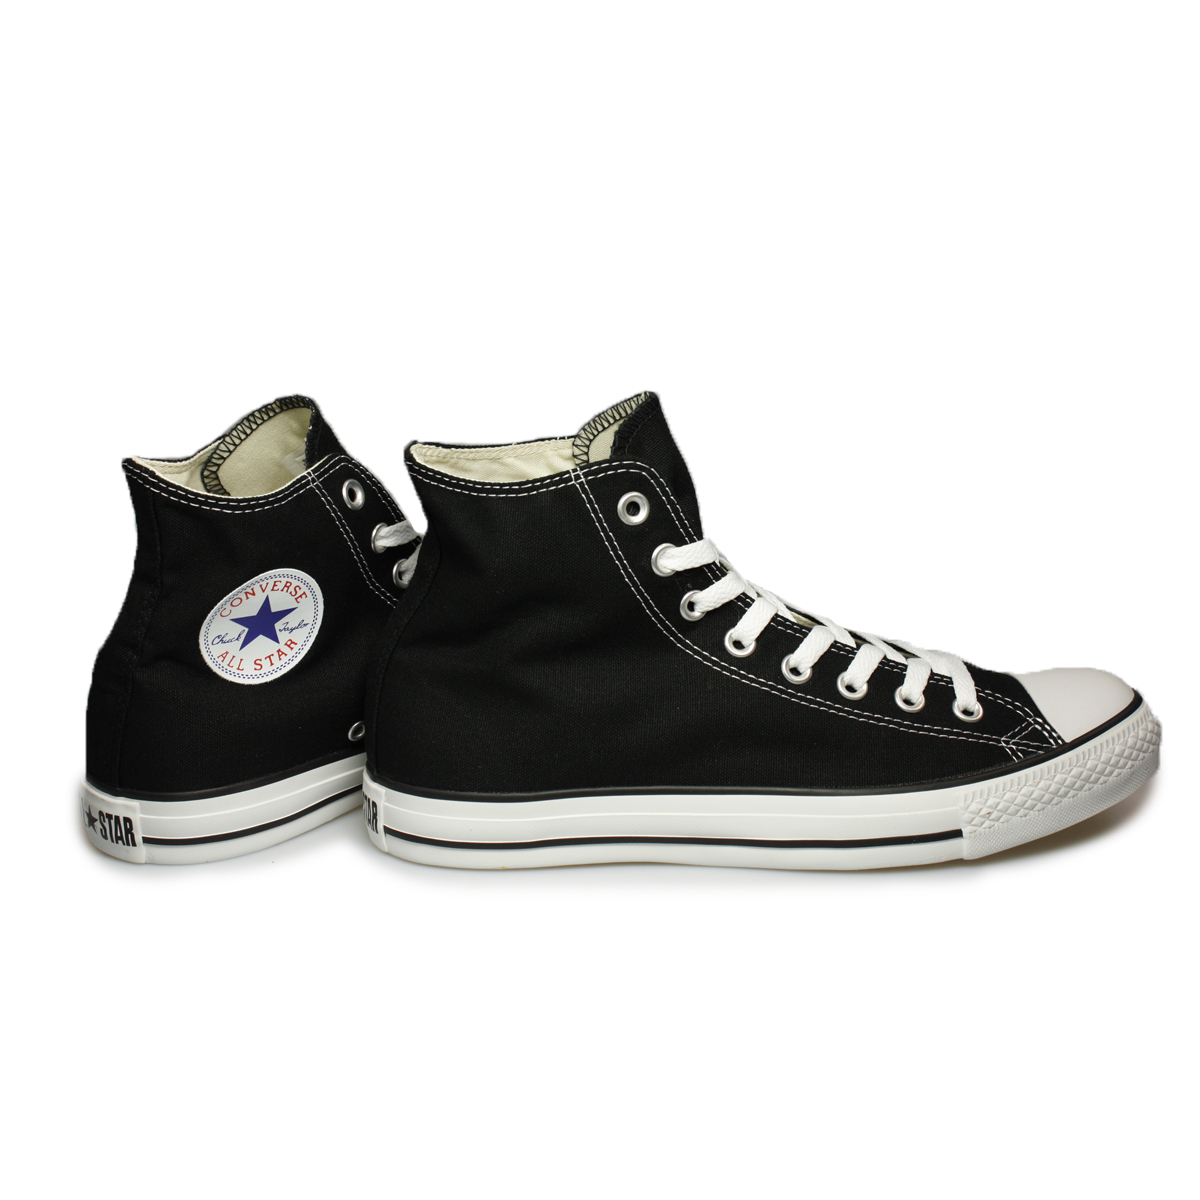 converse all star black. converse all star black and white